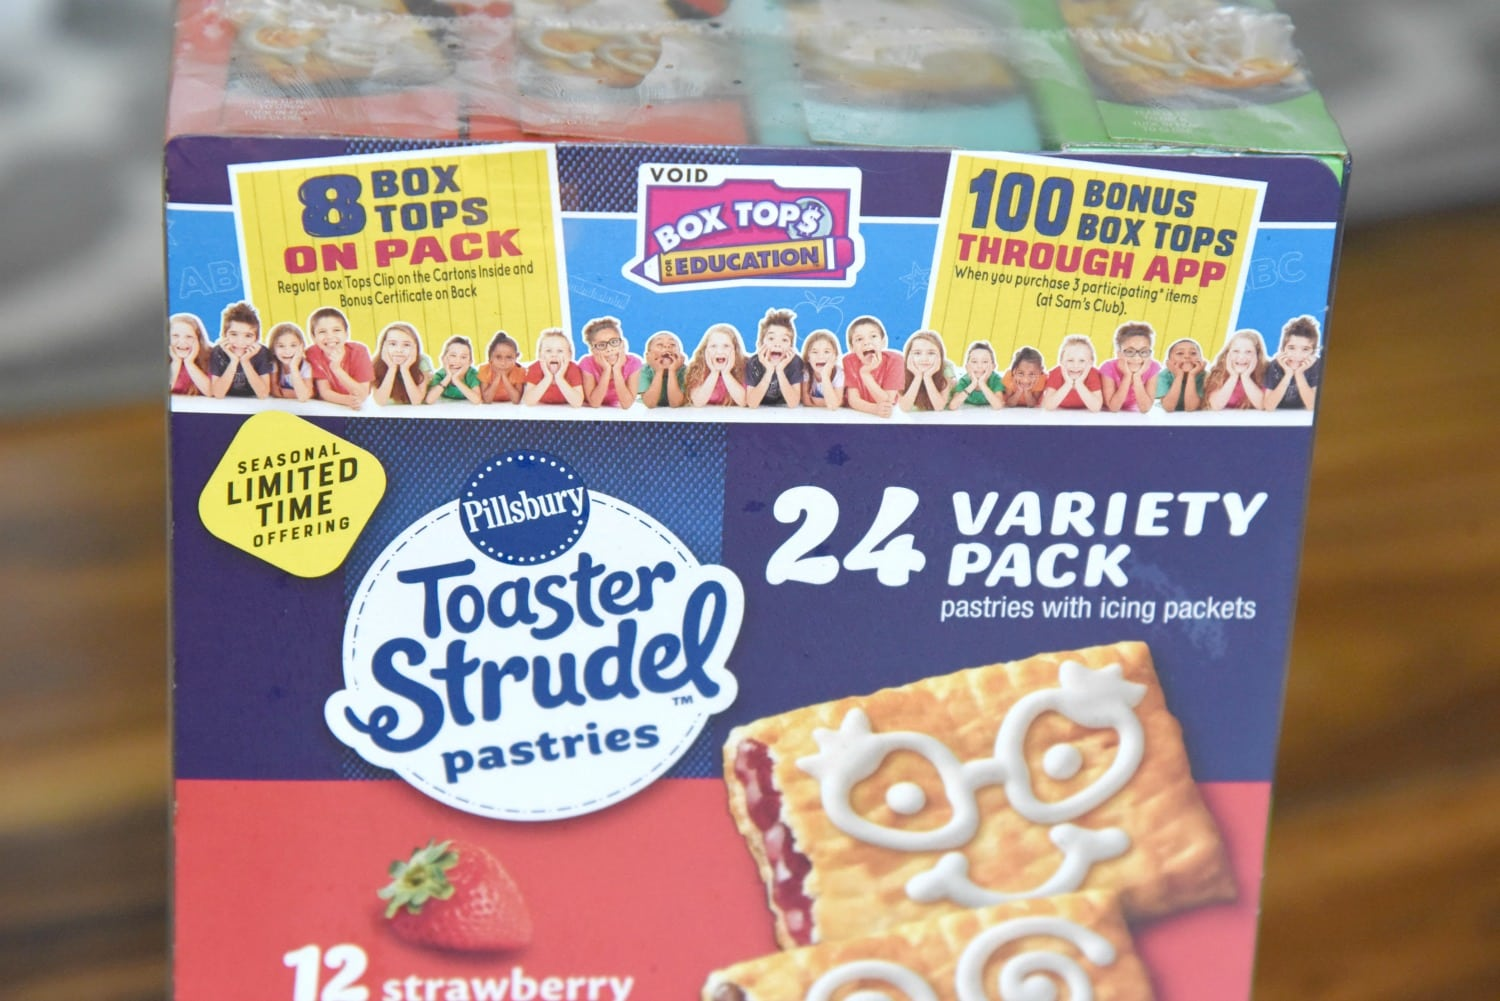 Toaster Strudel Pastries